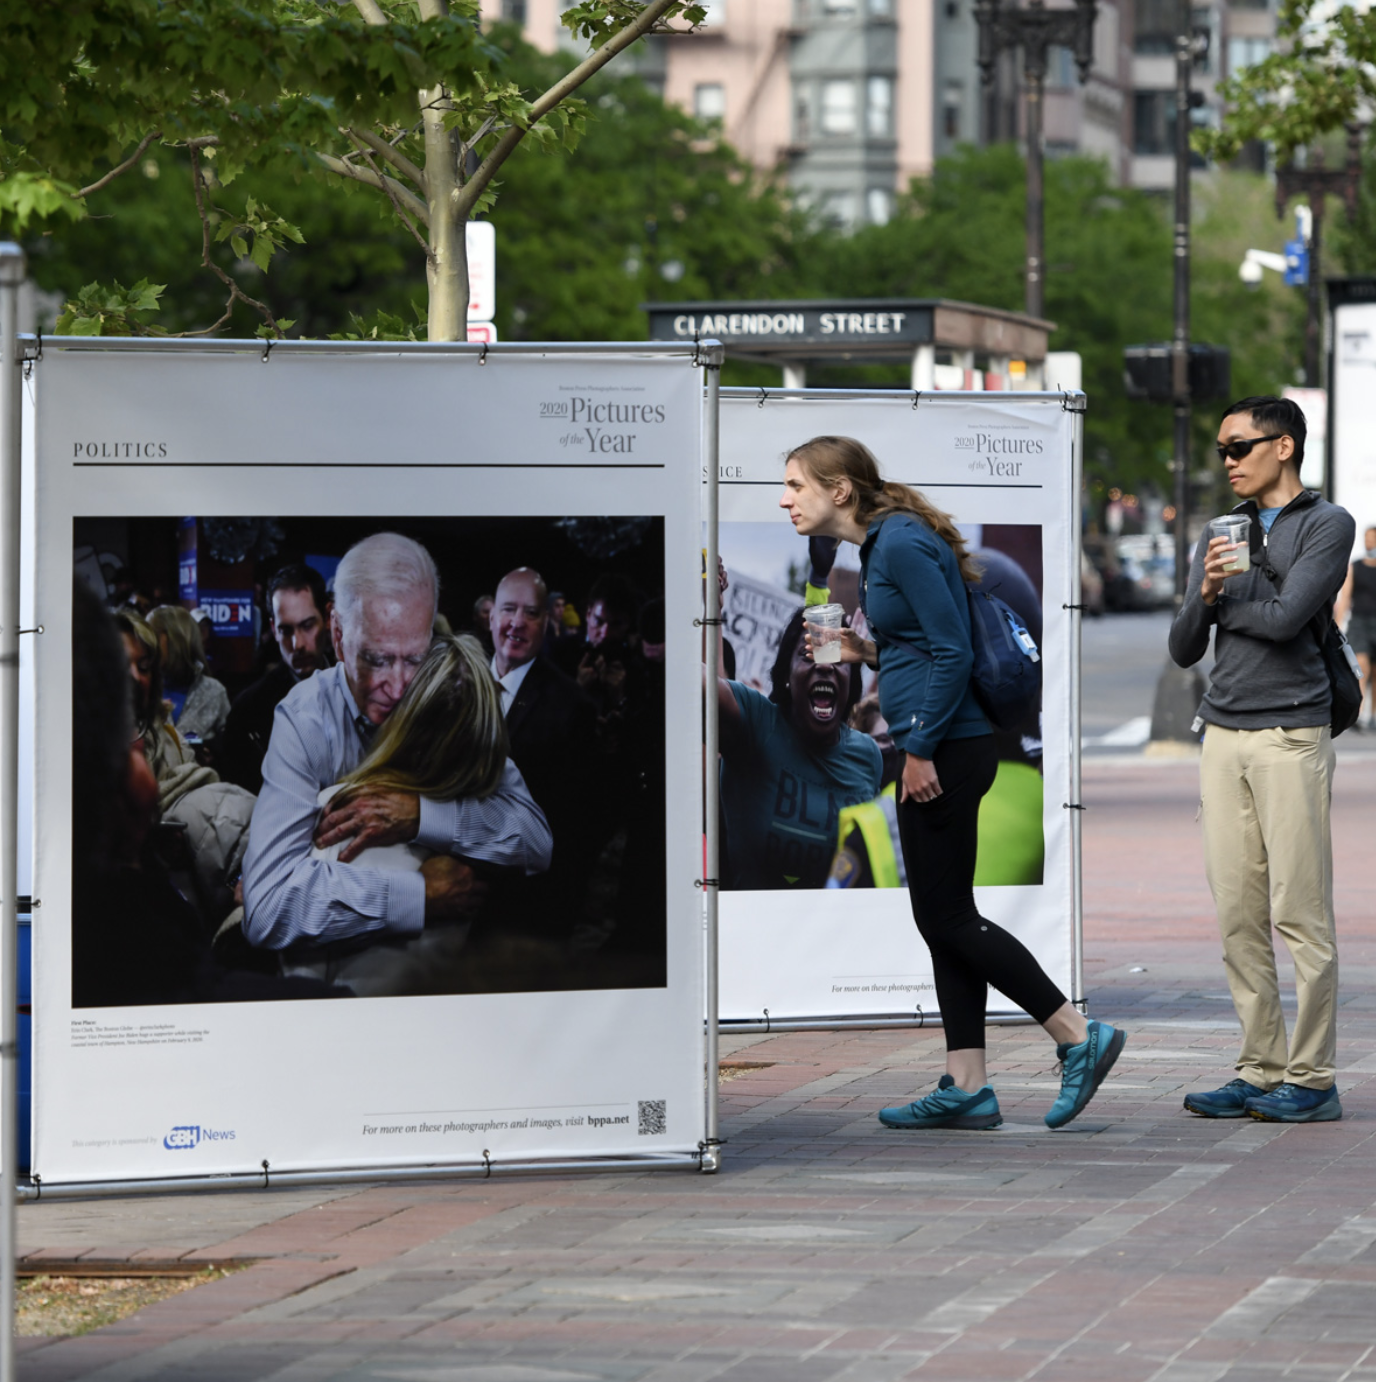 Pictures of the year at Copley Square